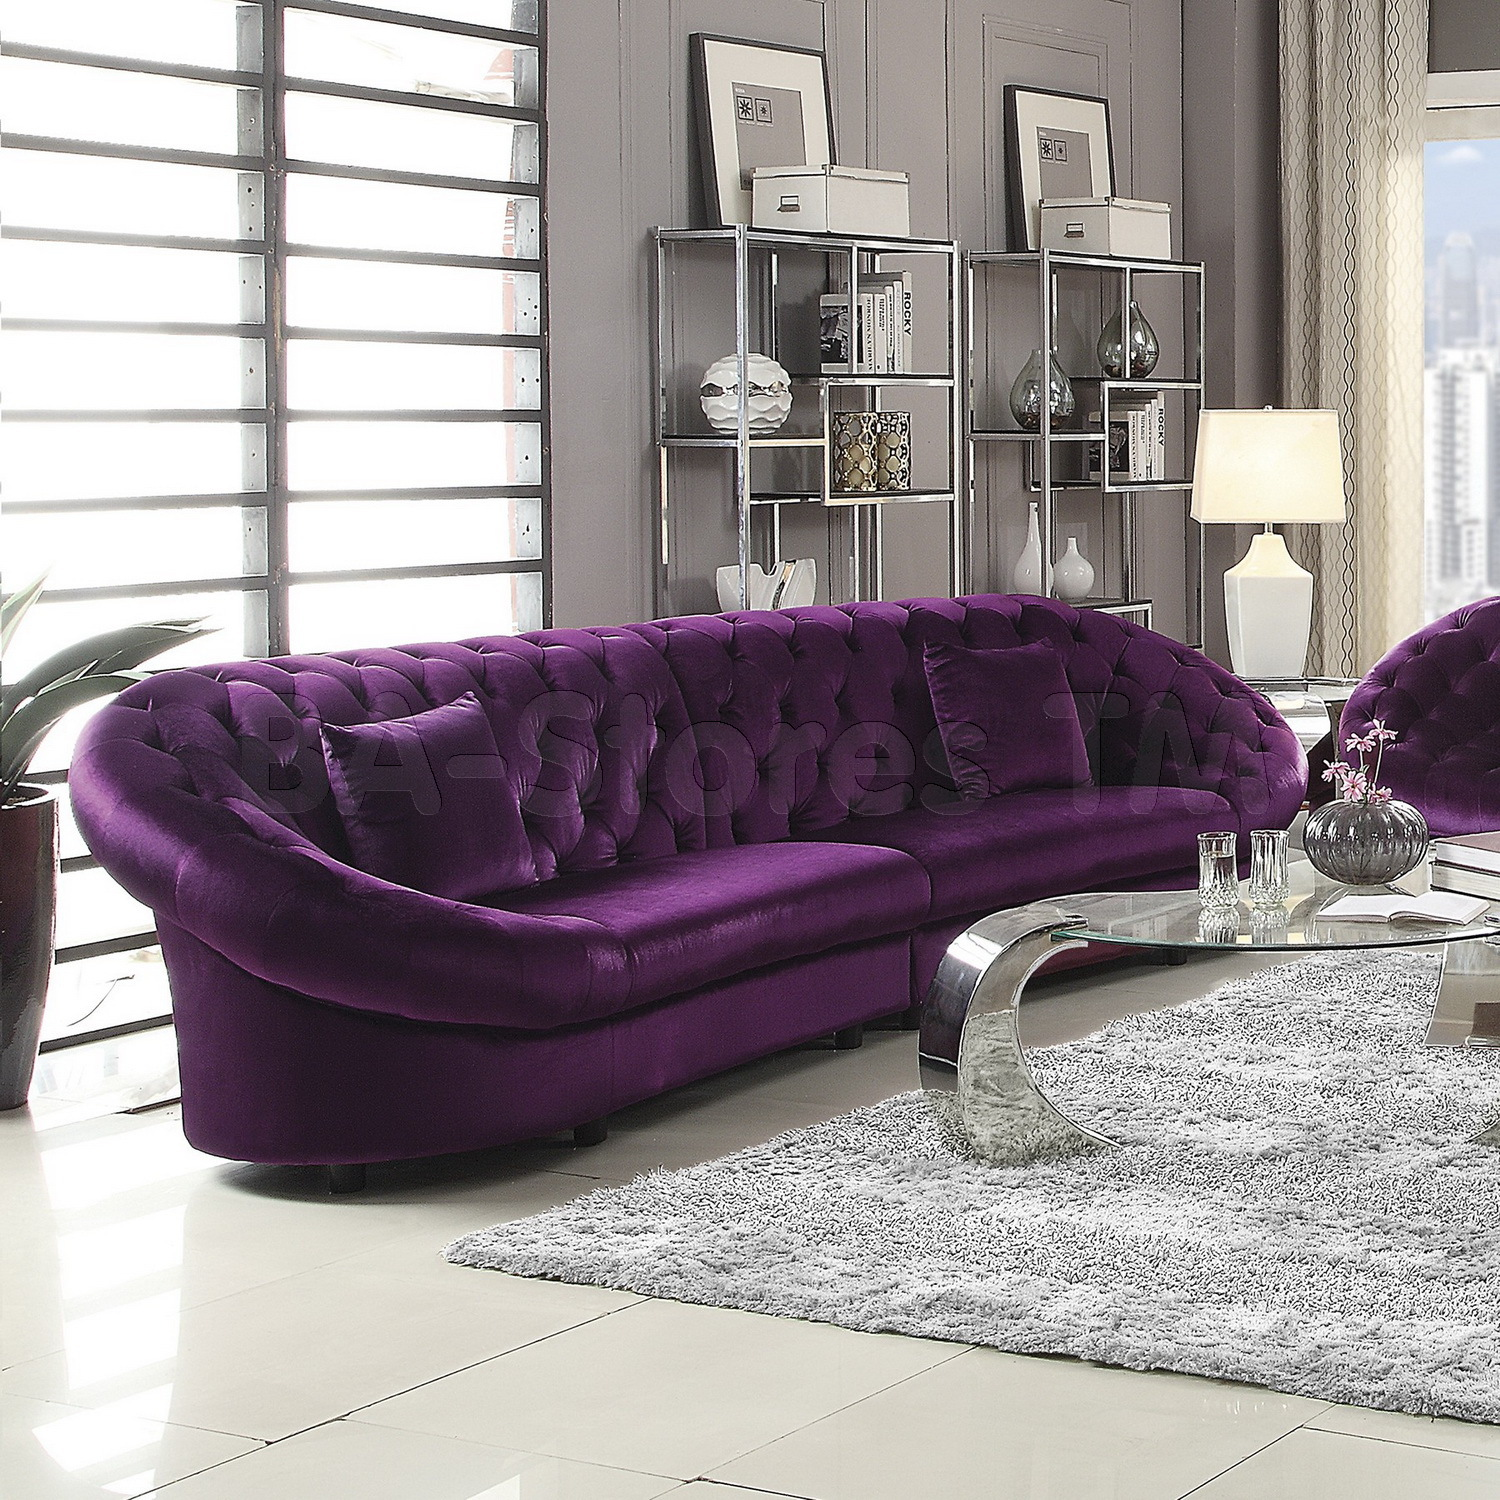 Furniture Warm Purple Sofa To Complete Your Living Room Decor